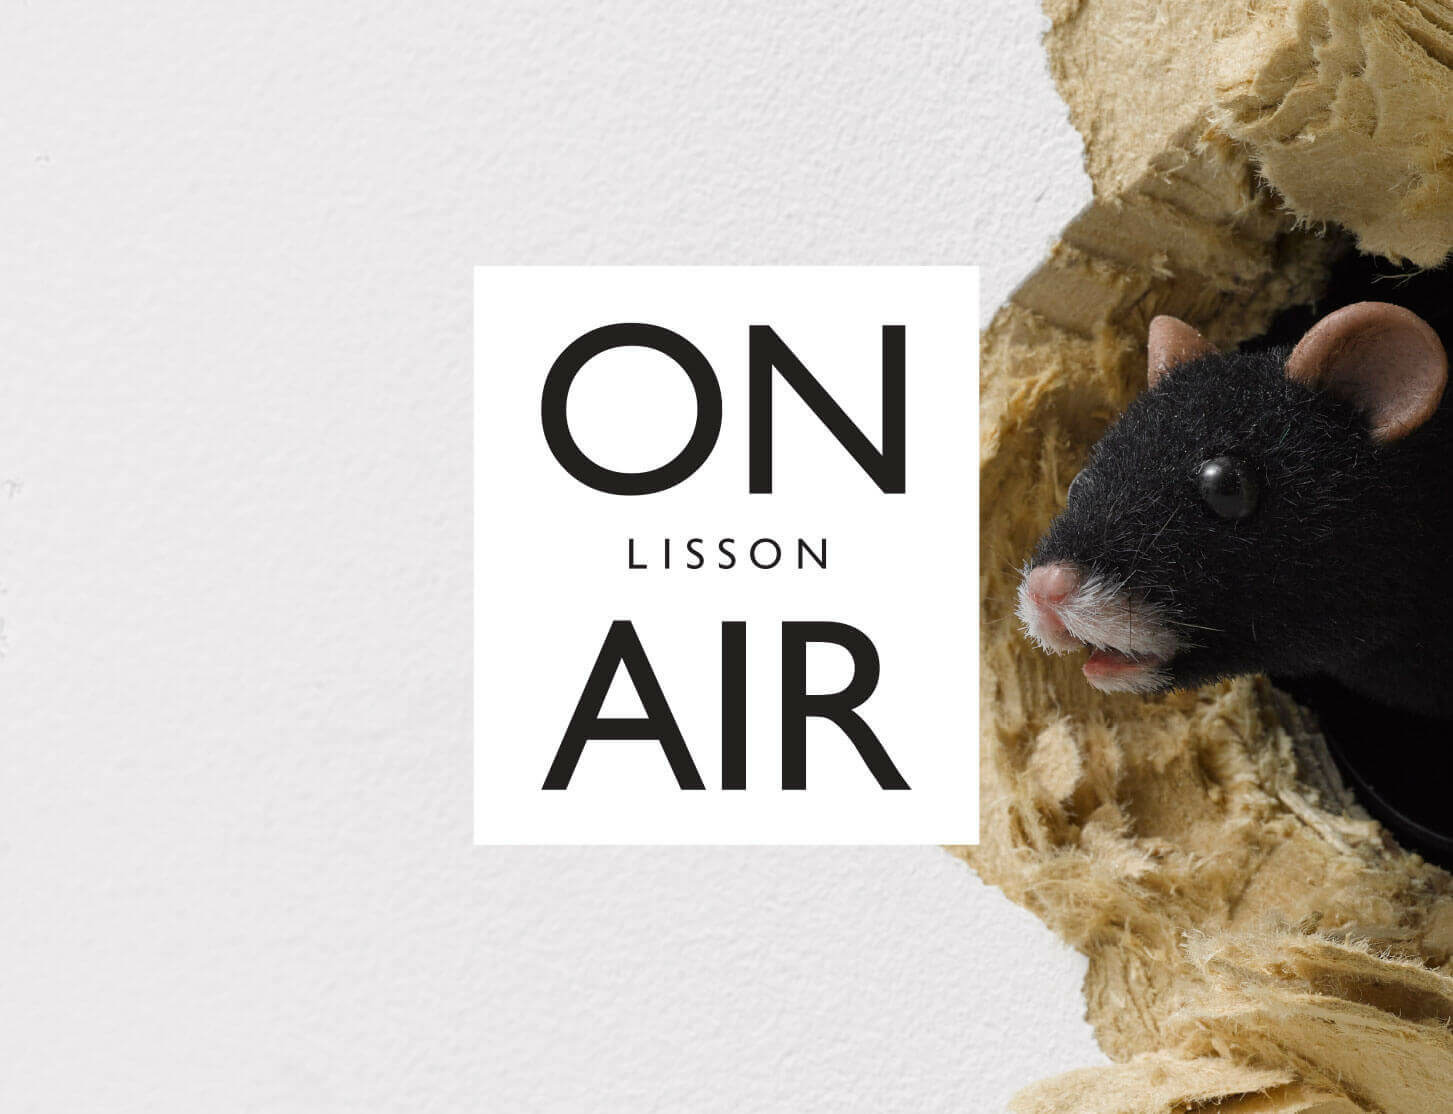 Episode 10: ON AIR with Ryan Gander discussing The End